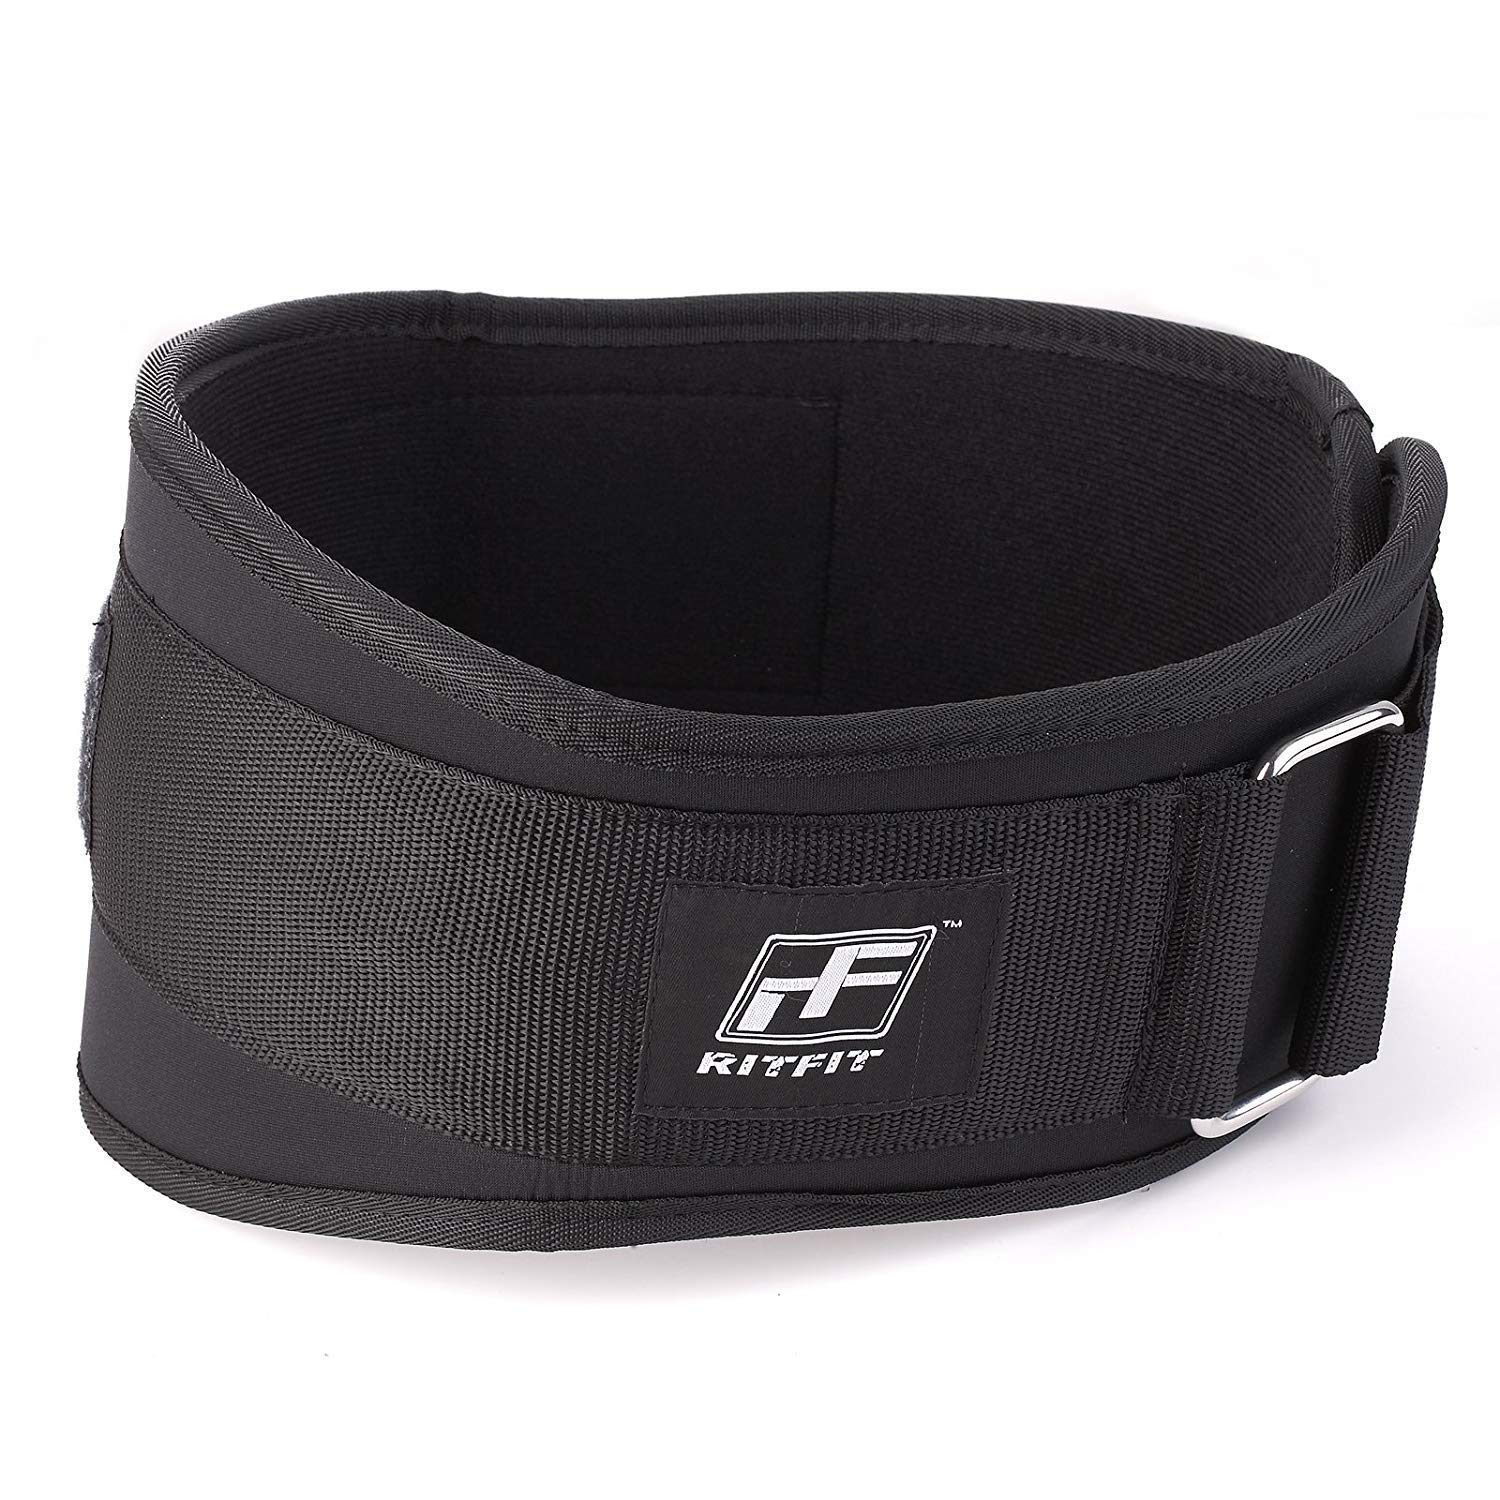 RitFit Weight Lifting Belt - Great for Squats, Clean, Lunges, Deadlift, Thrusters - Men and Women - 6 Inch - Multiple Color Choices - Firm & Comfortable Lumbar Support with Back Injury Protection by RitFit (Image #1)